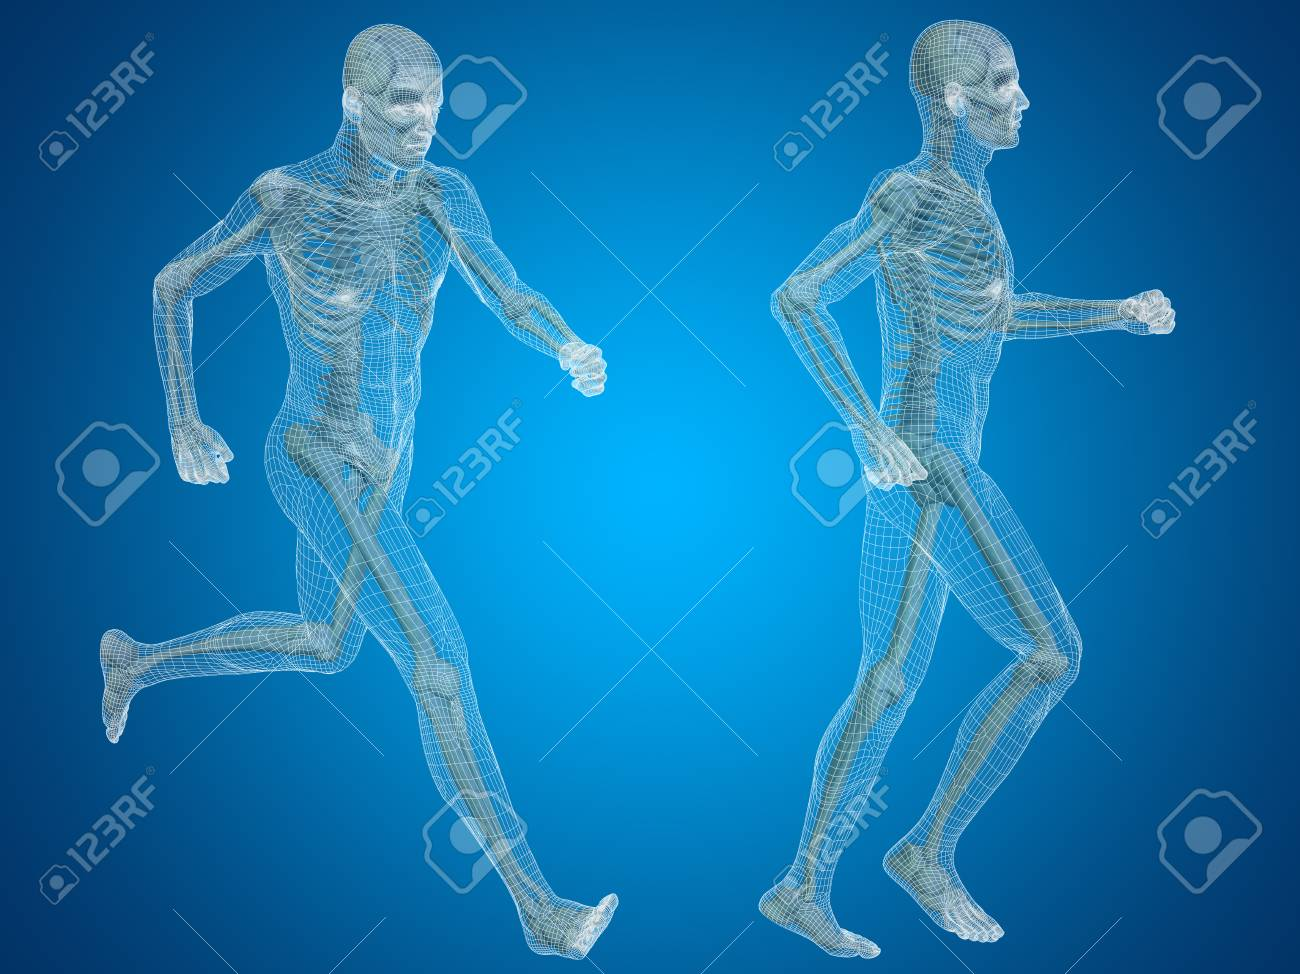 Conceptual Man Or Human 3d Anatomy Or Body On Blue Background Stock